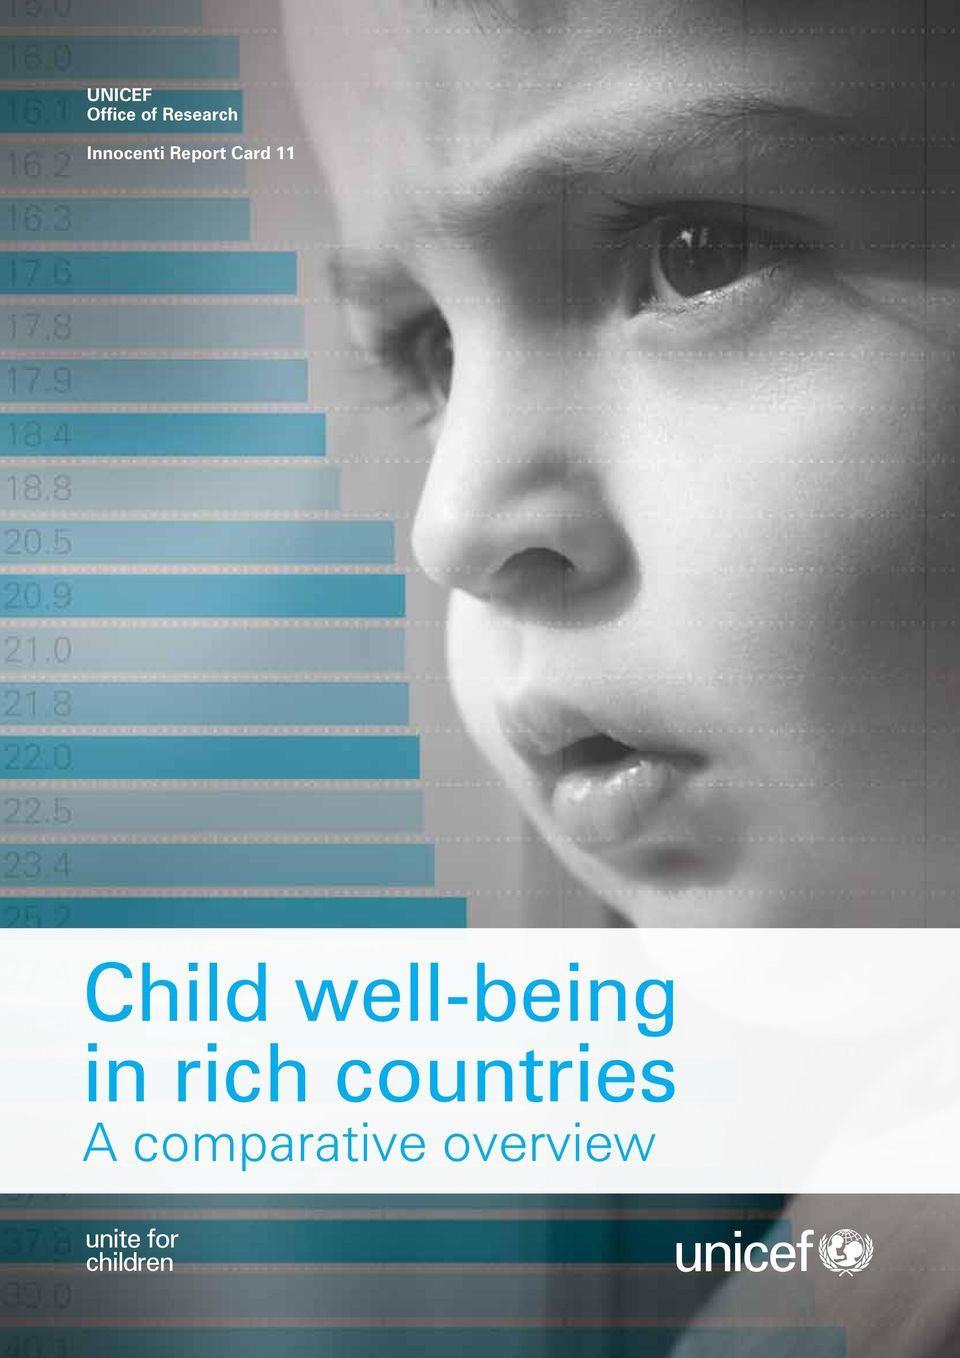 Child well-being in rich